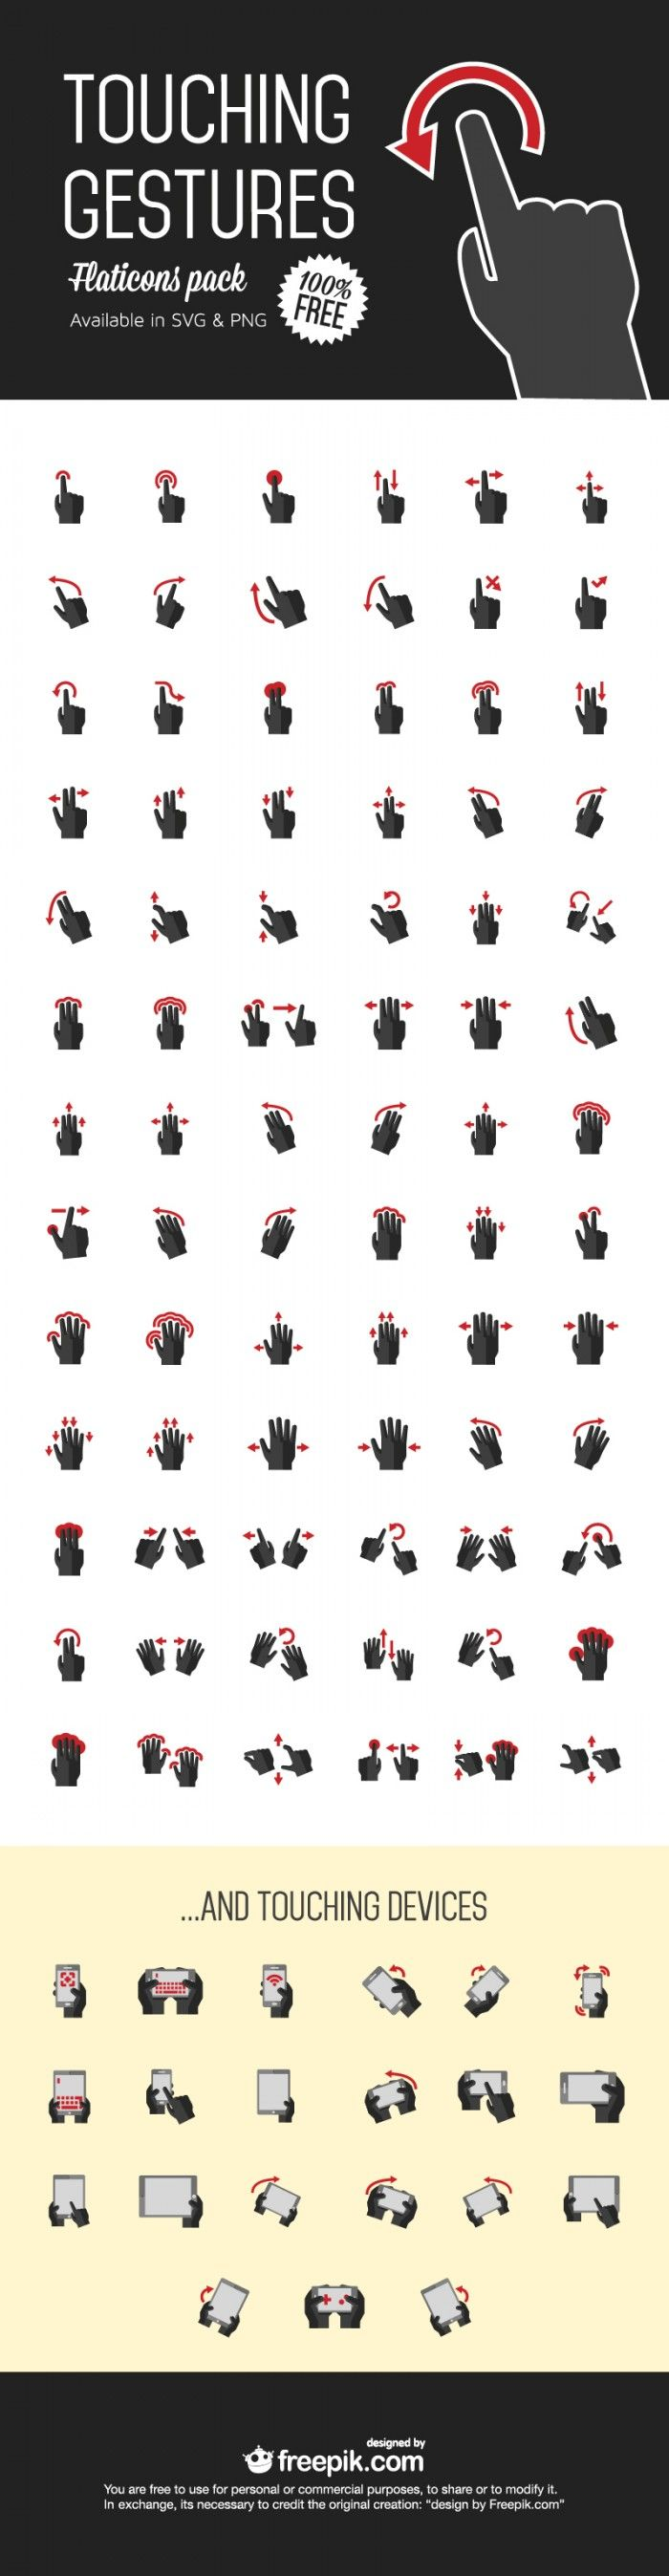 Cover Gestures 01 700x2695